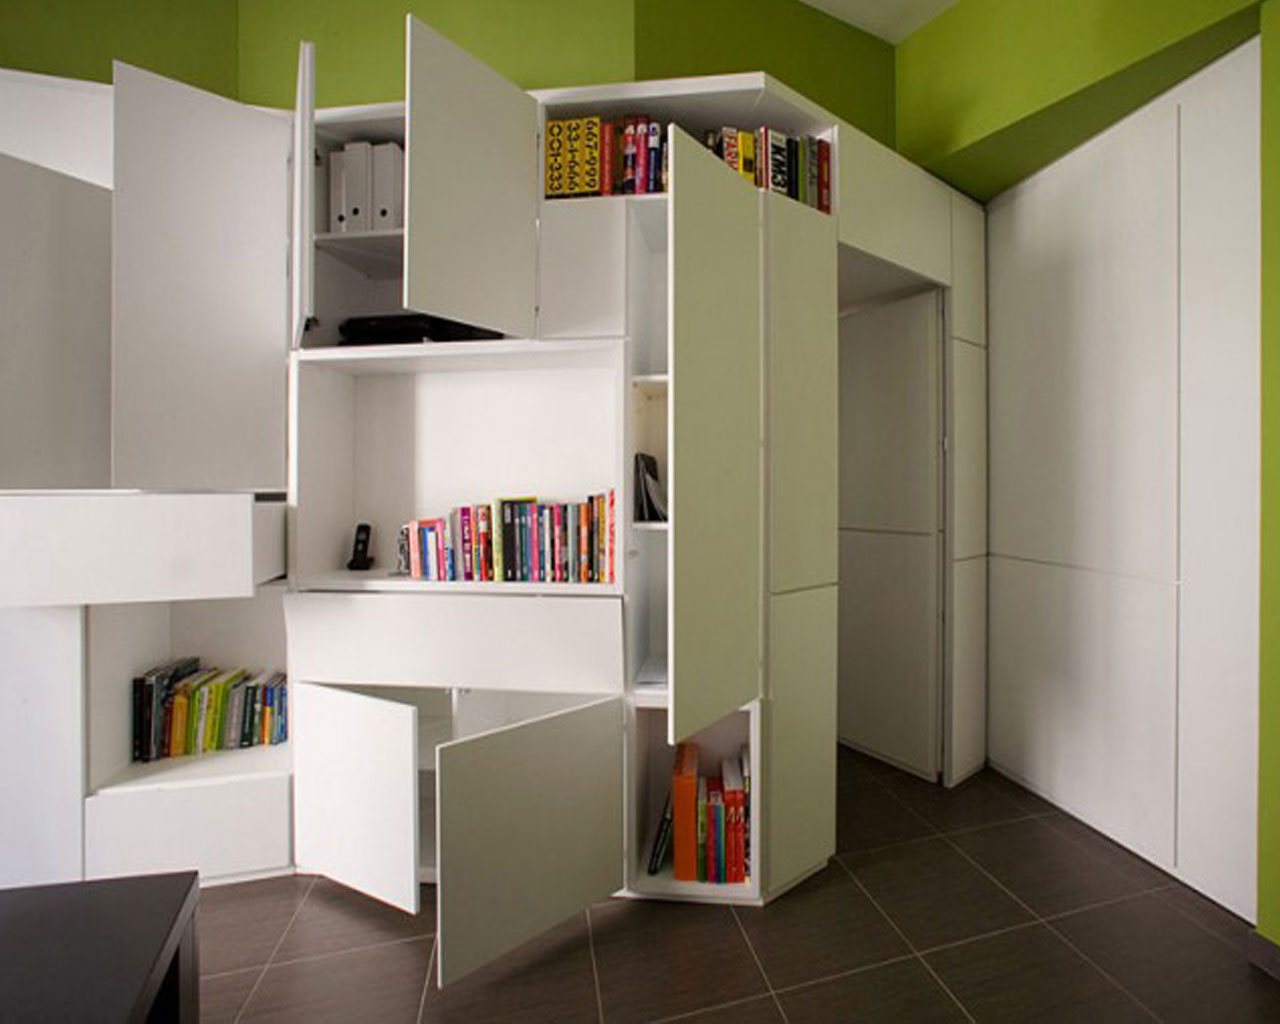 Storage ideas for a small apartment for Compact apartment ideas